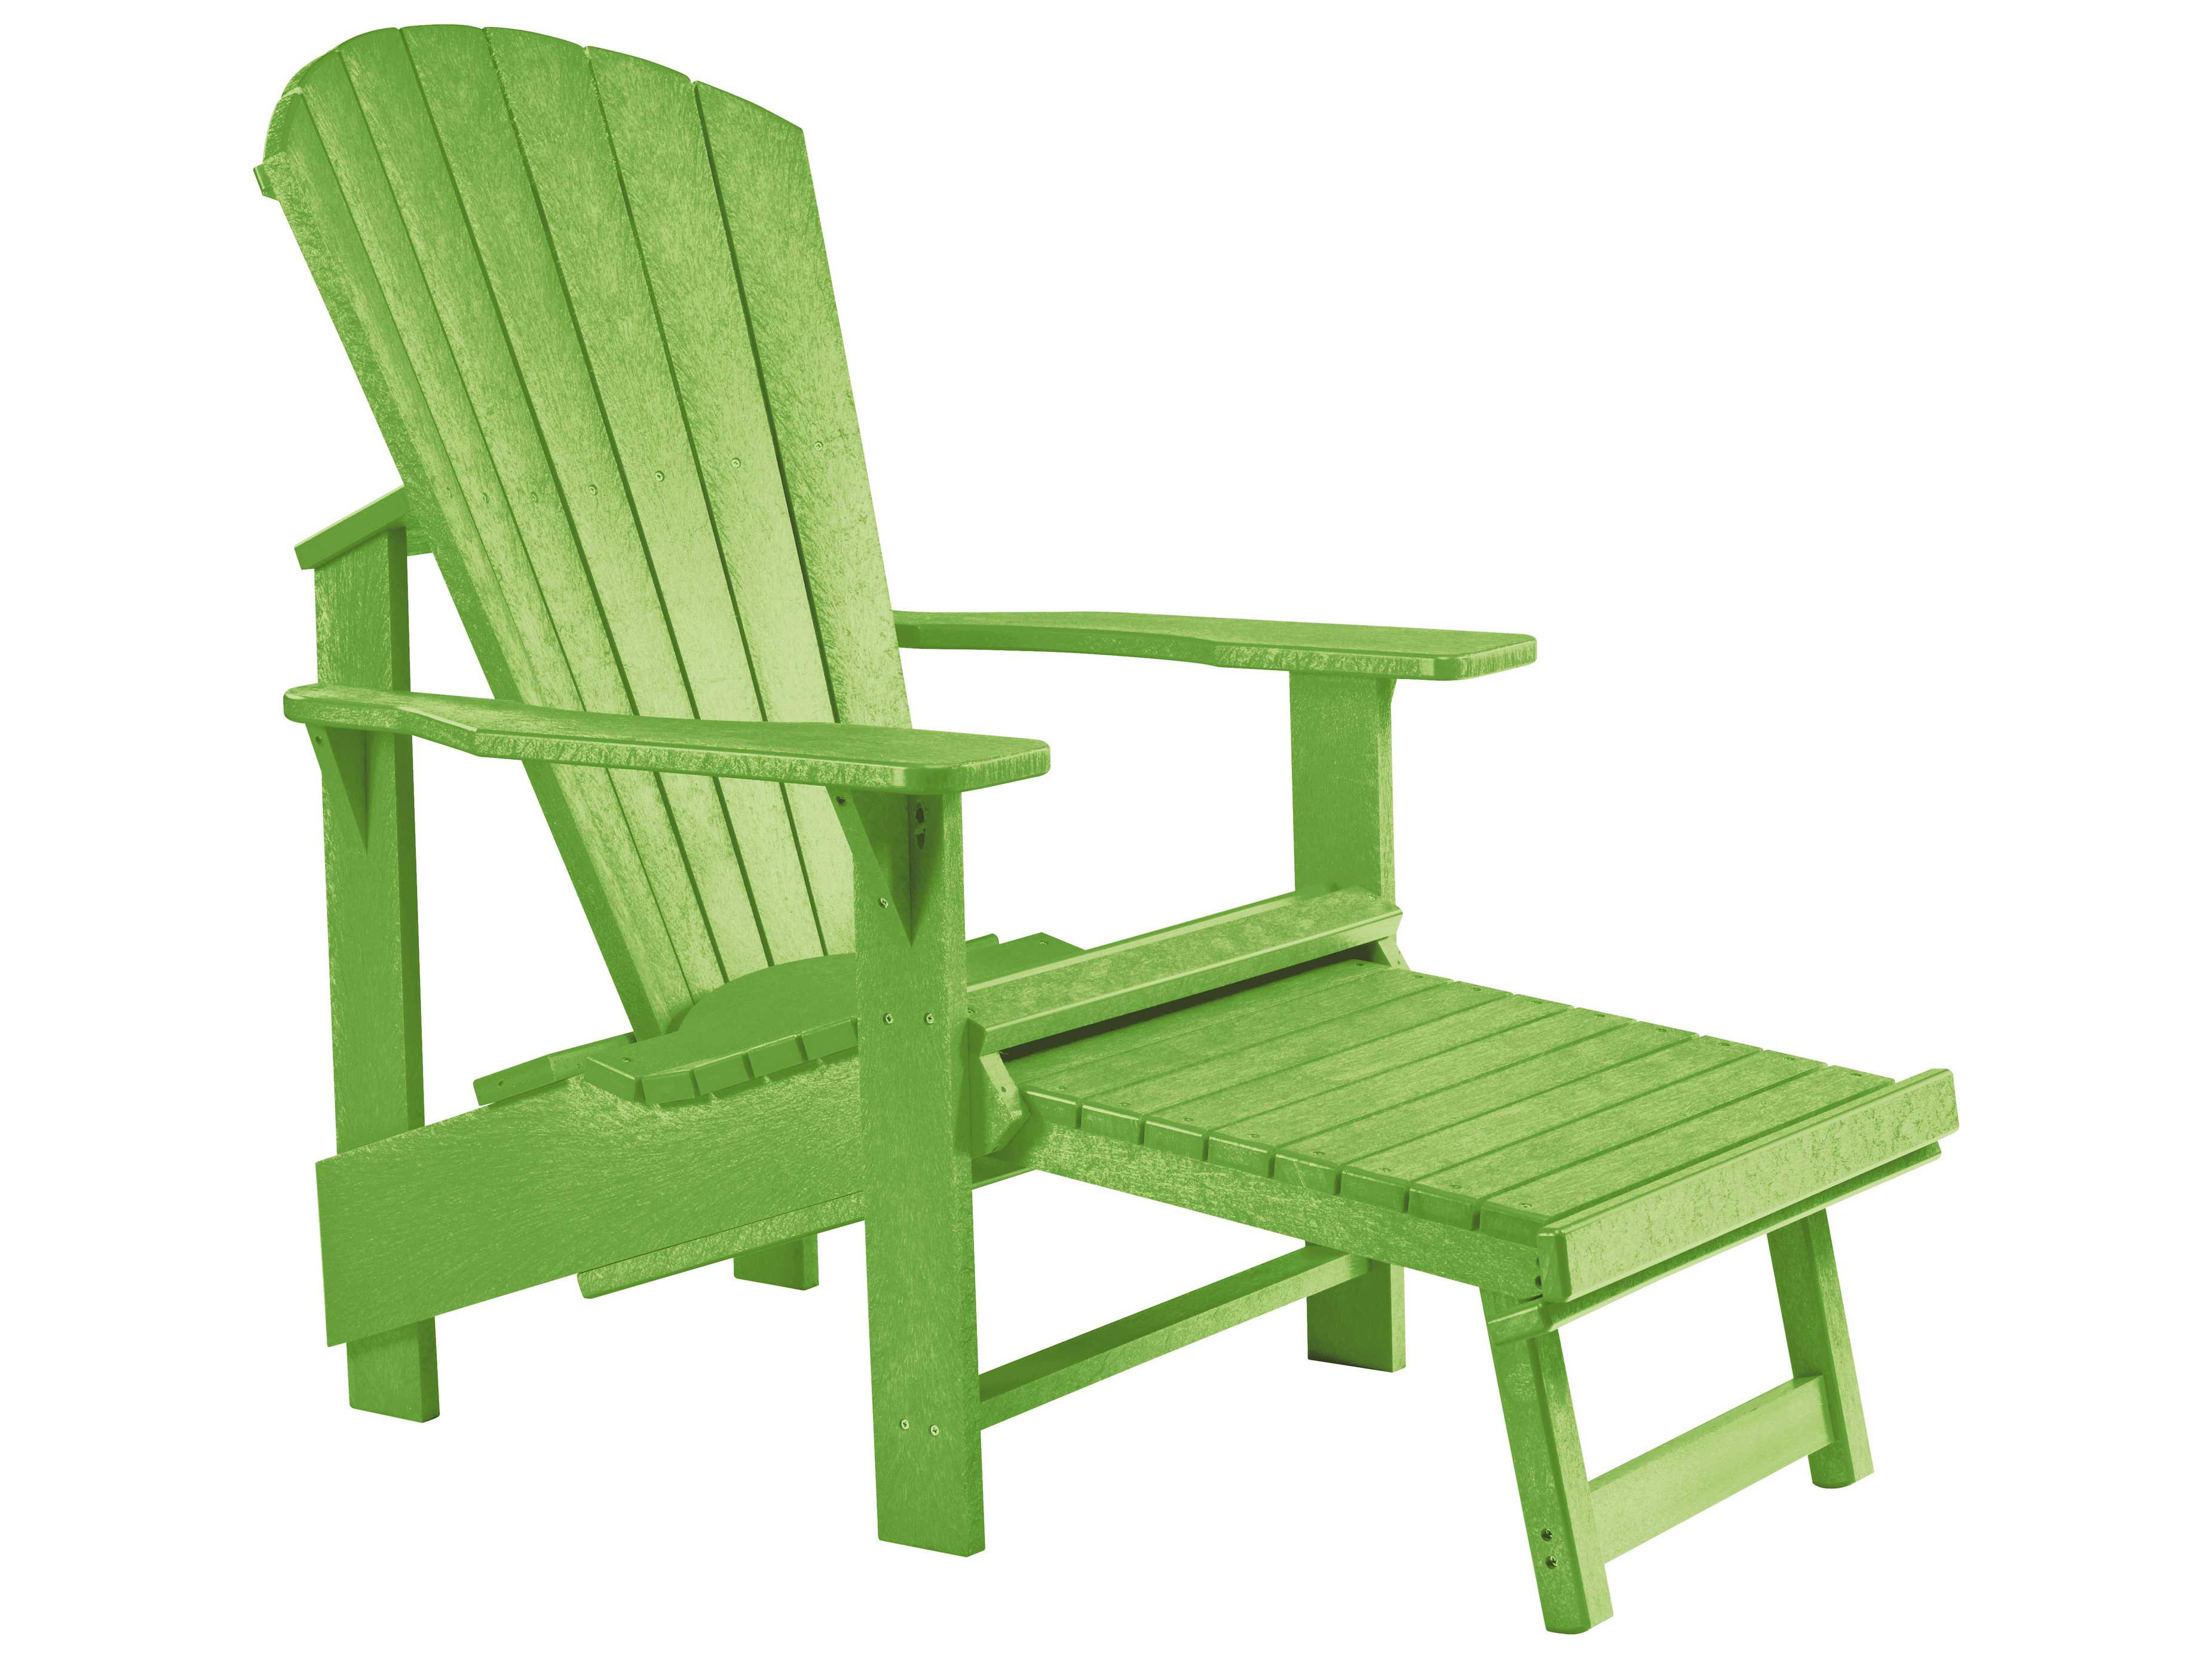 adirondack chairs recycled materials what is an ergonomic chair c r plastic generation